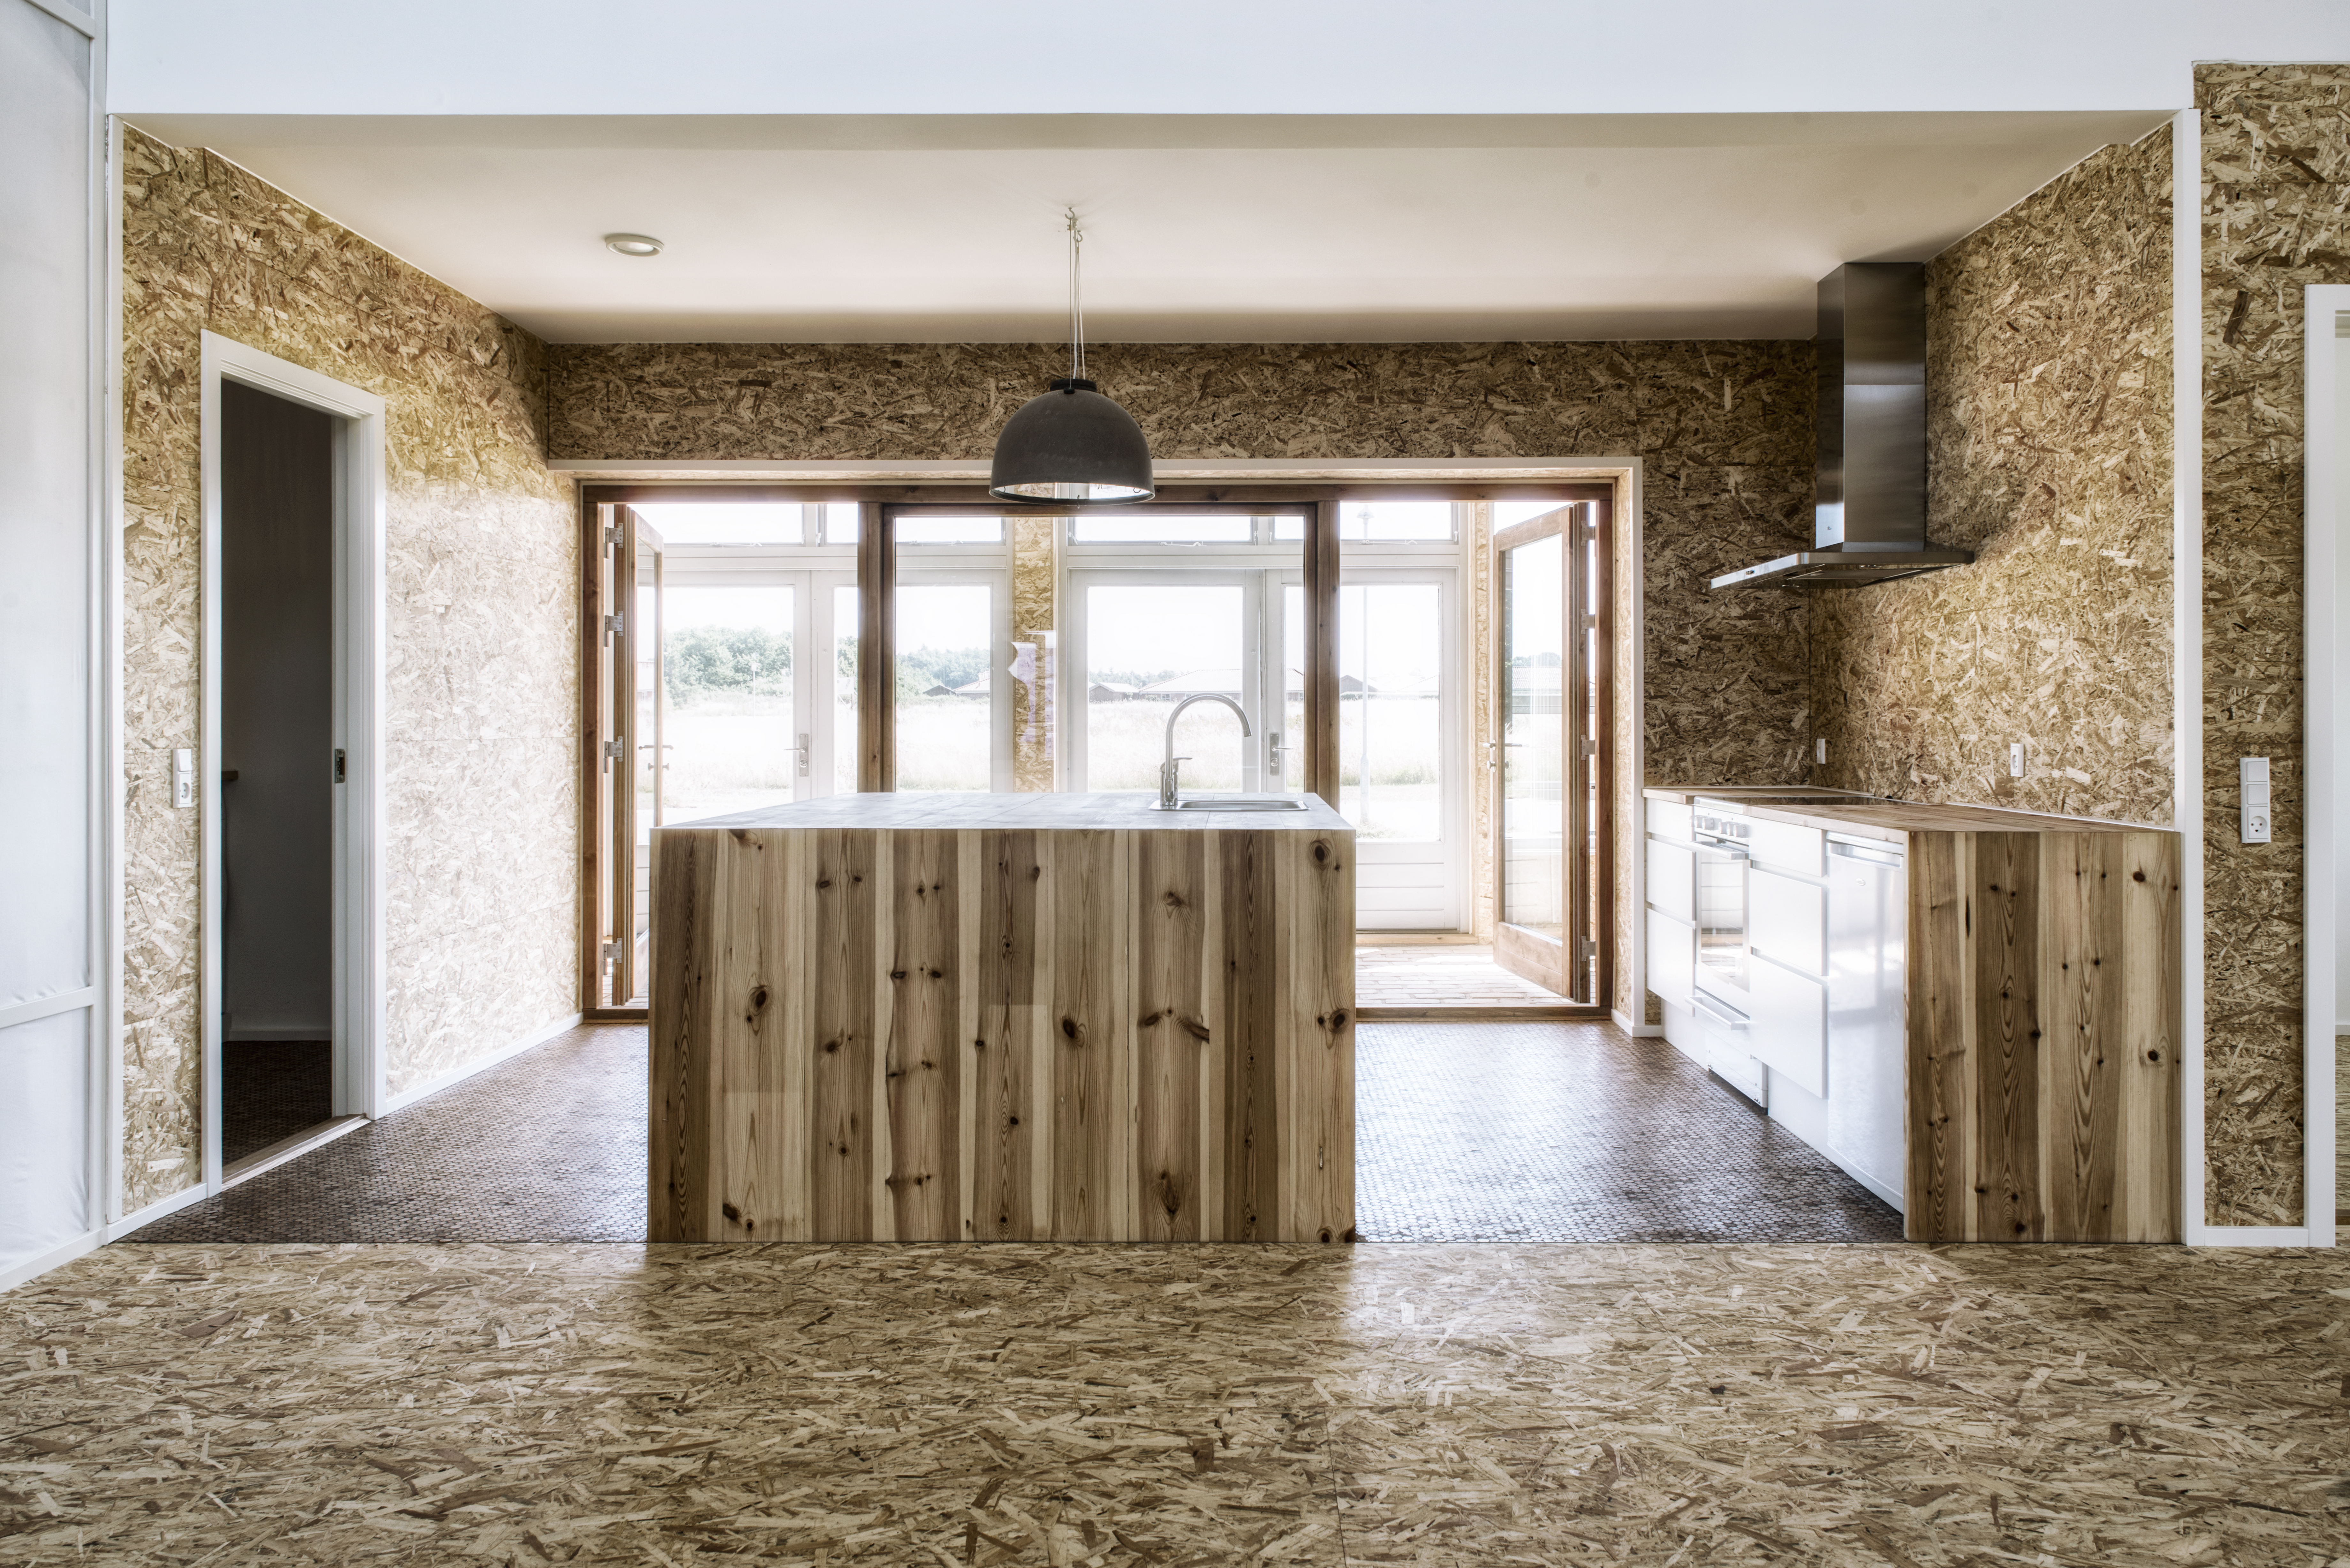 Foto: Upcycle House Lendager Group